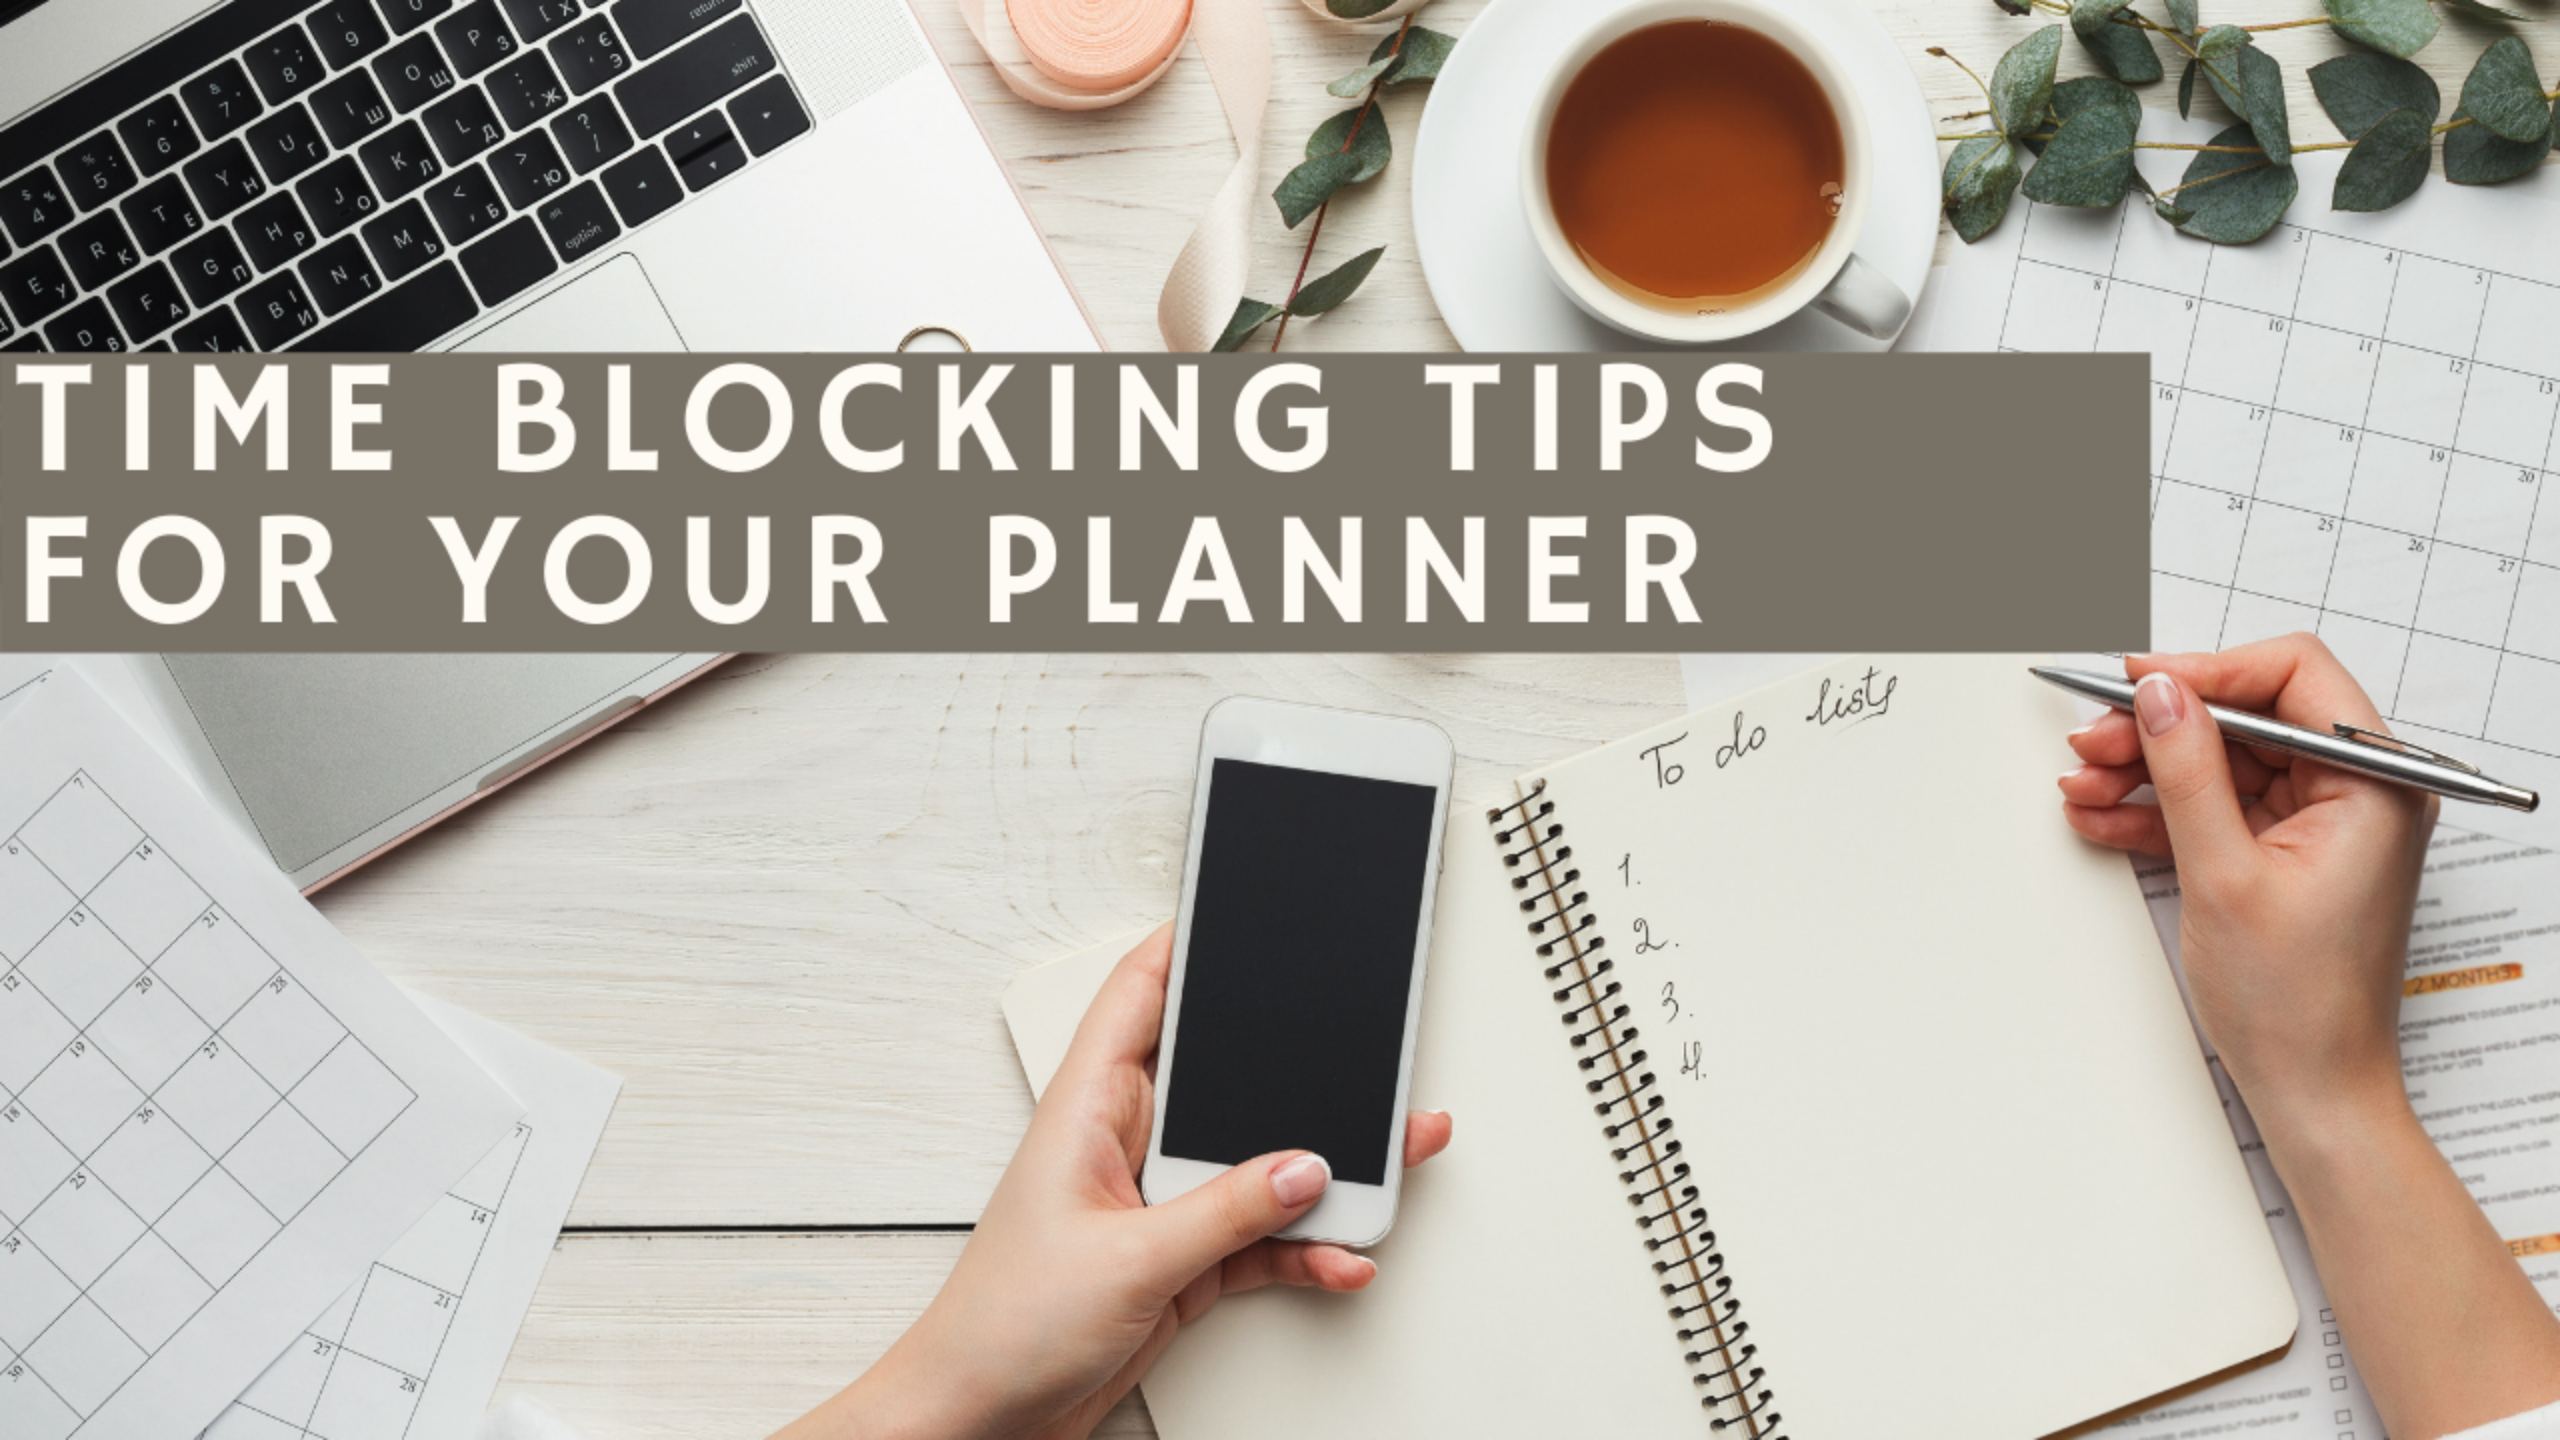 Time blocking Tips for Your Planner